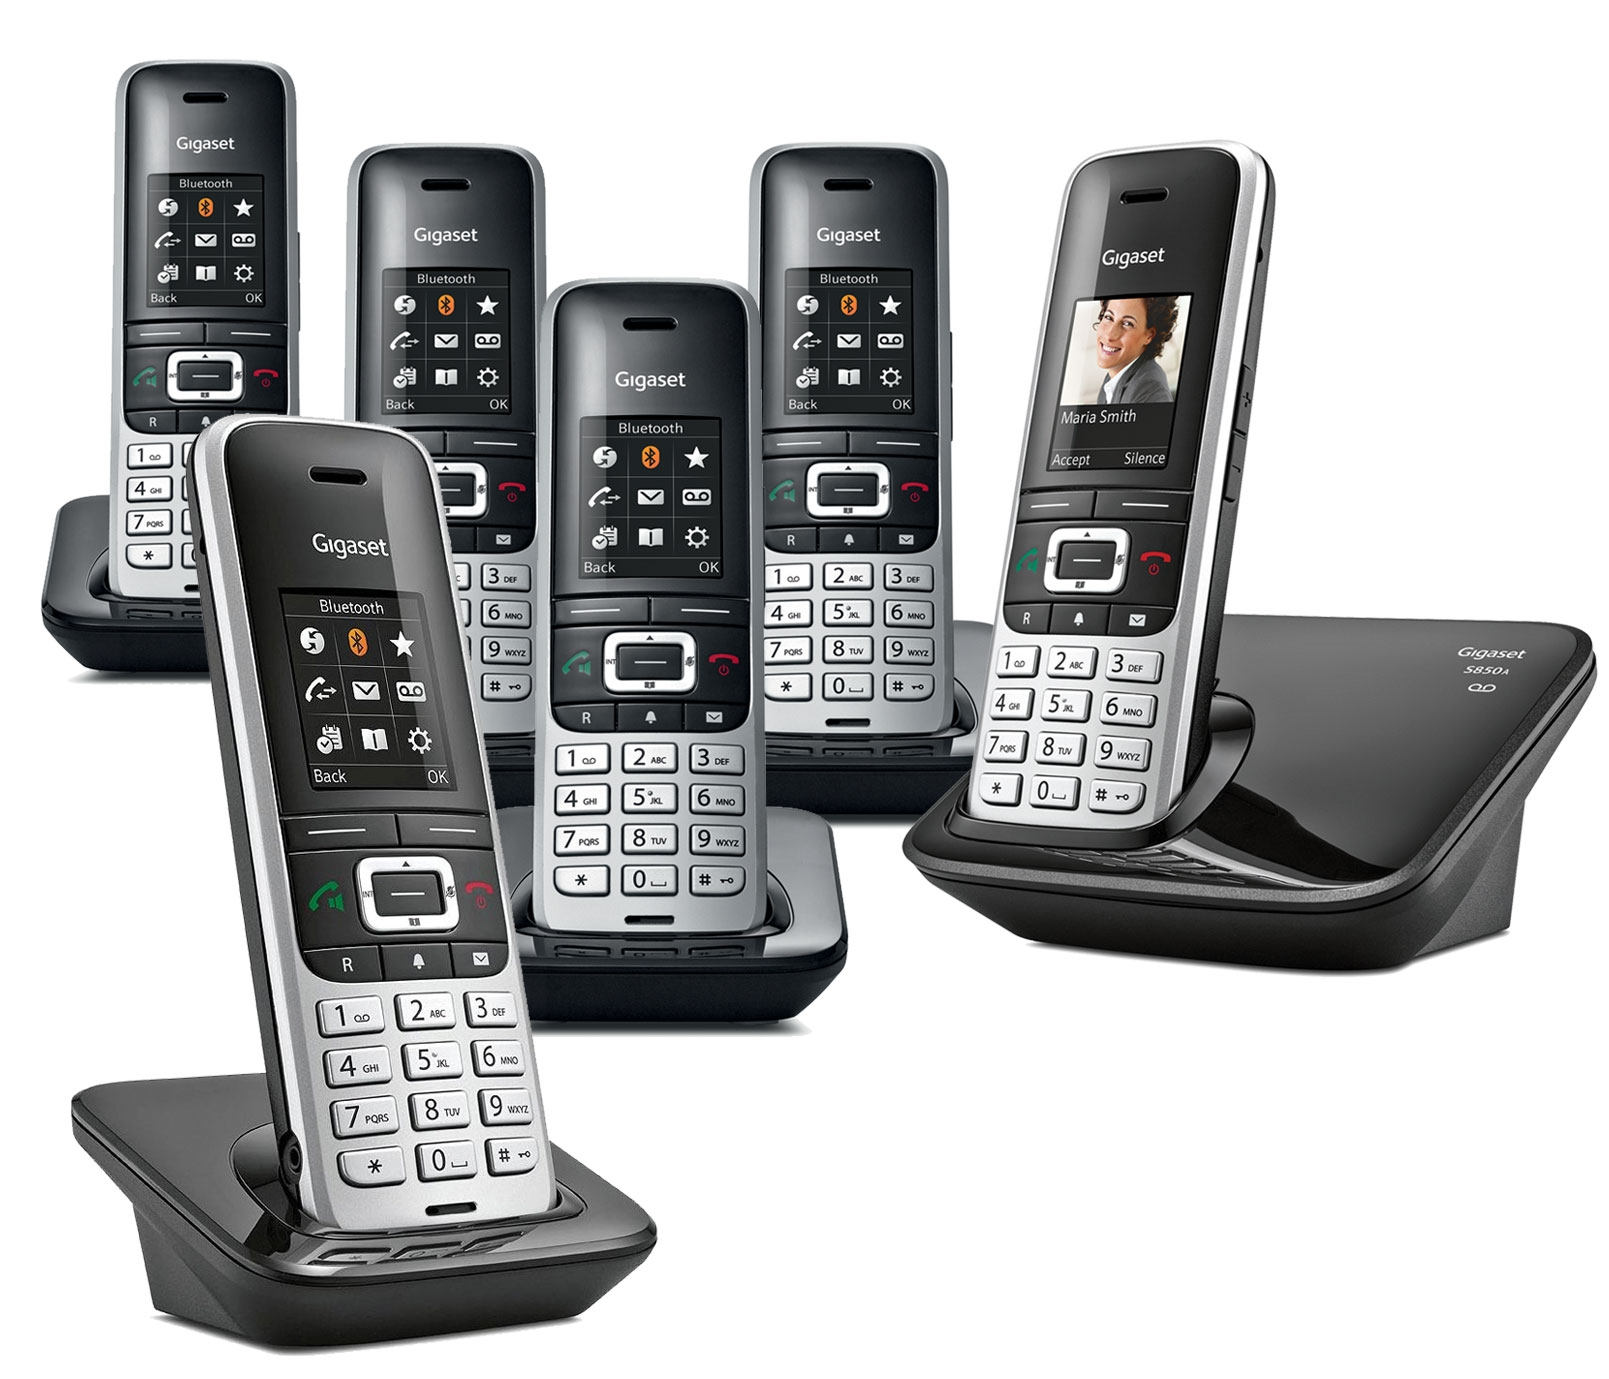 Image of Siemens Gigaset Premium S850A Cordless Phone, Six Handsets with Answer Machine